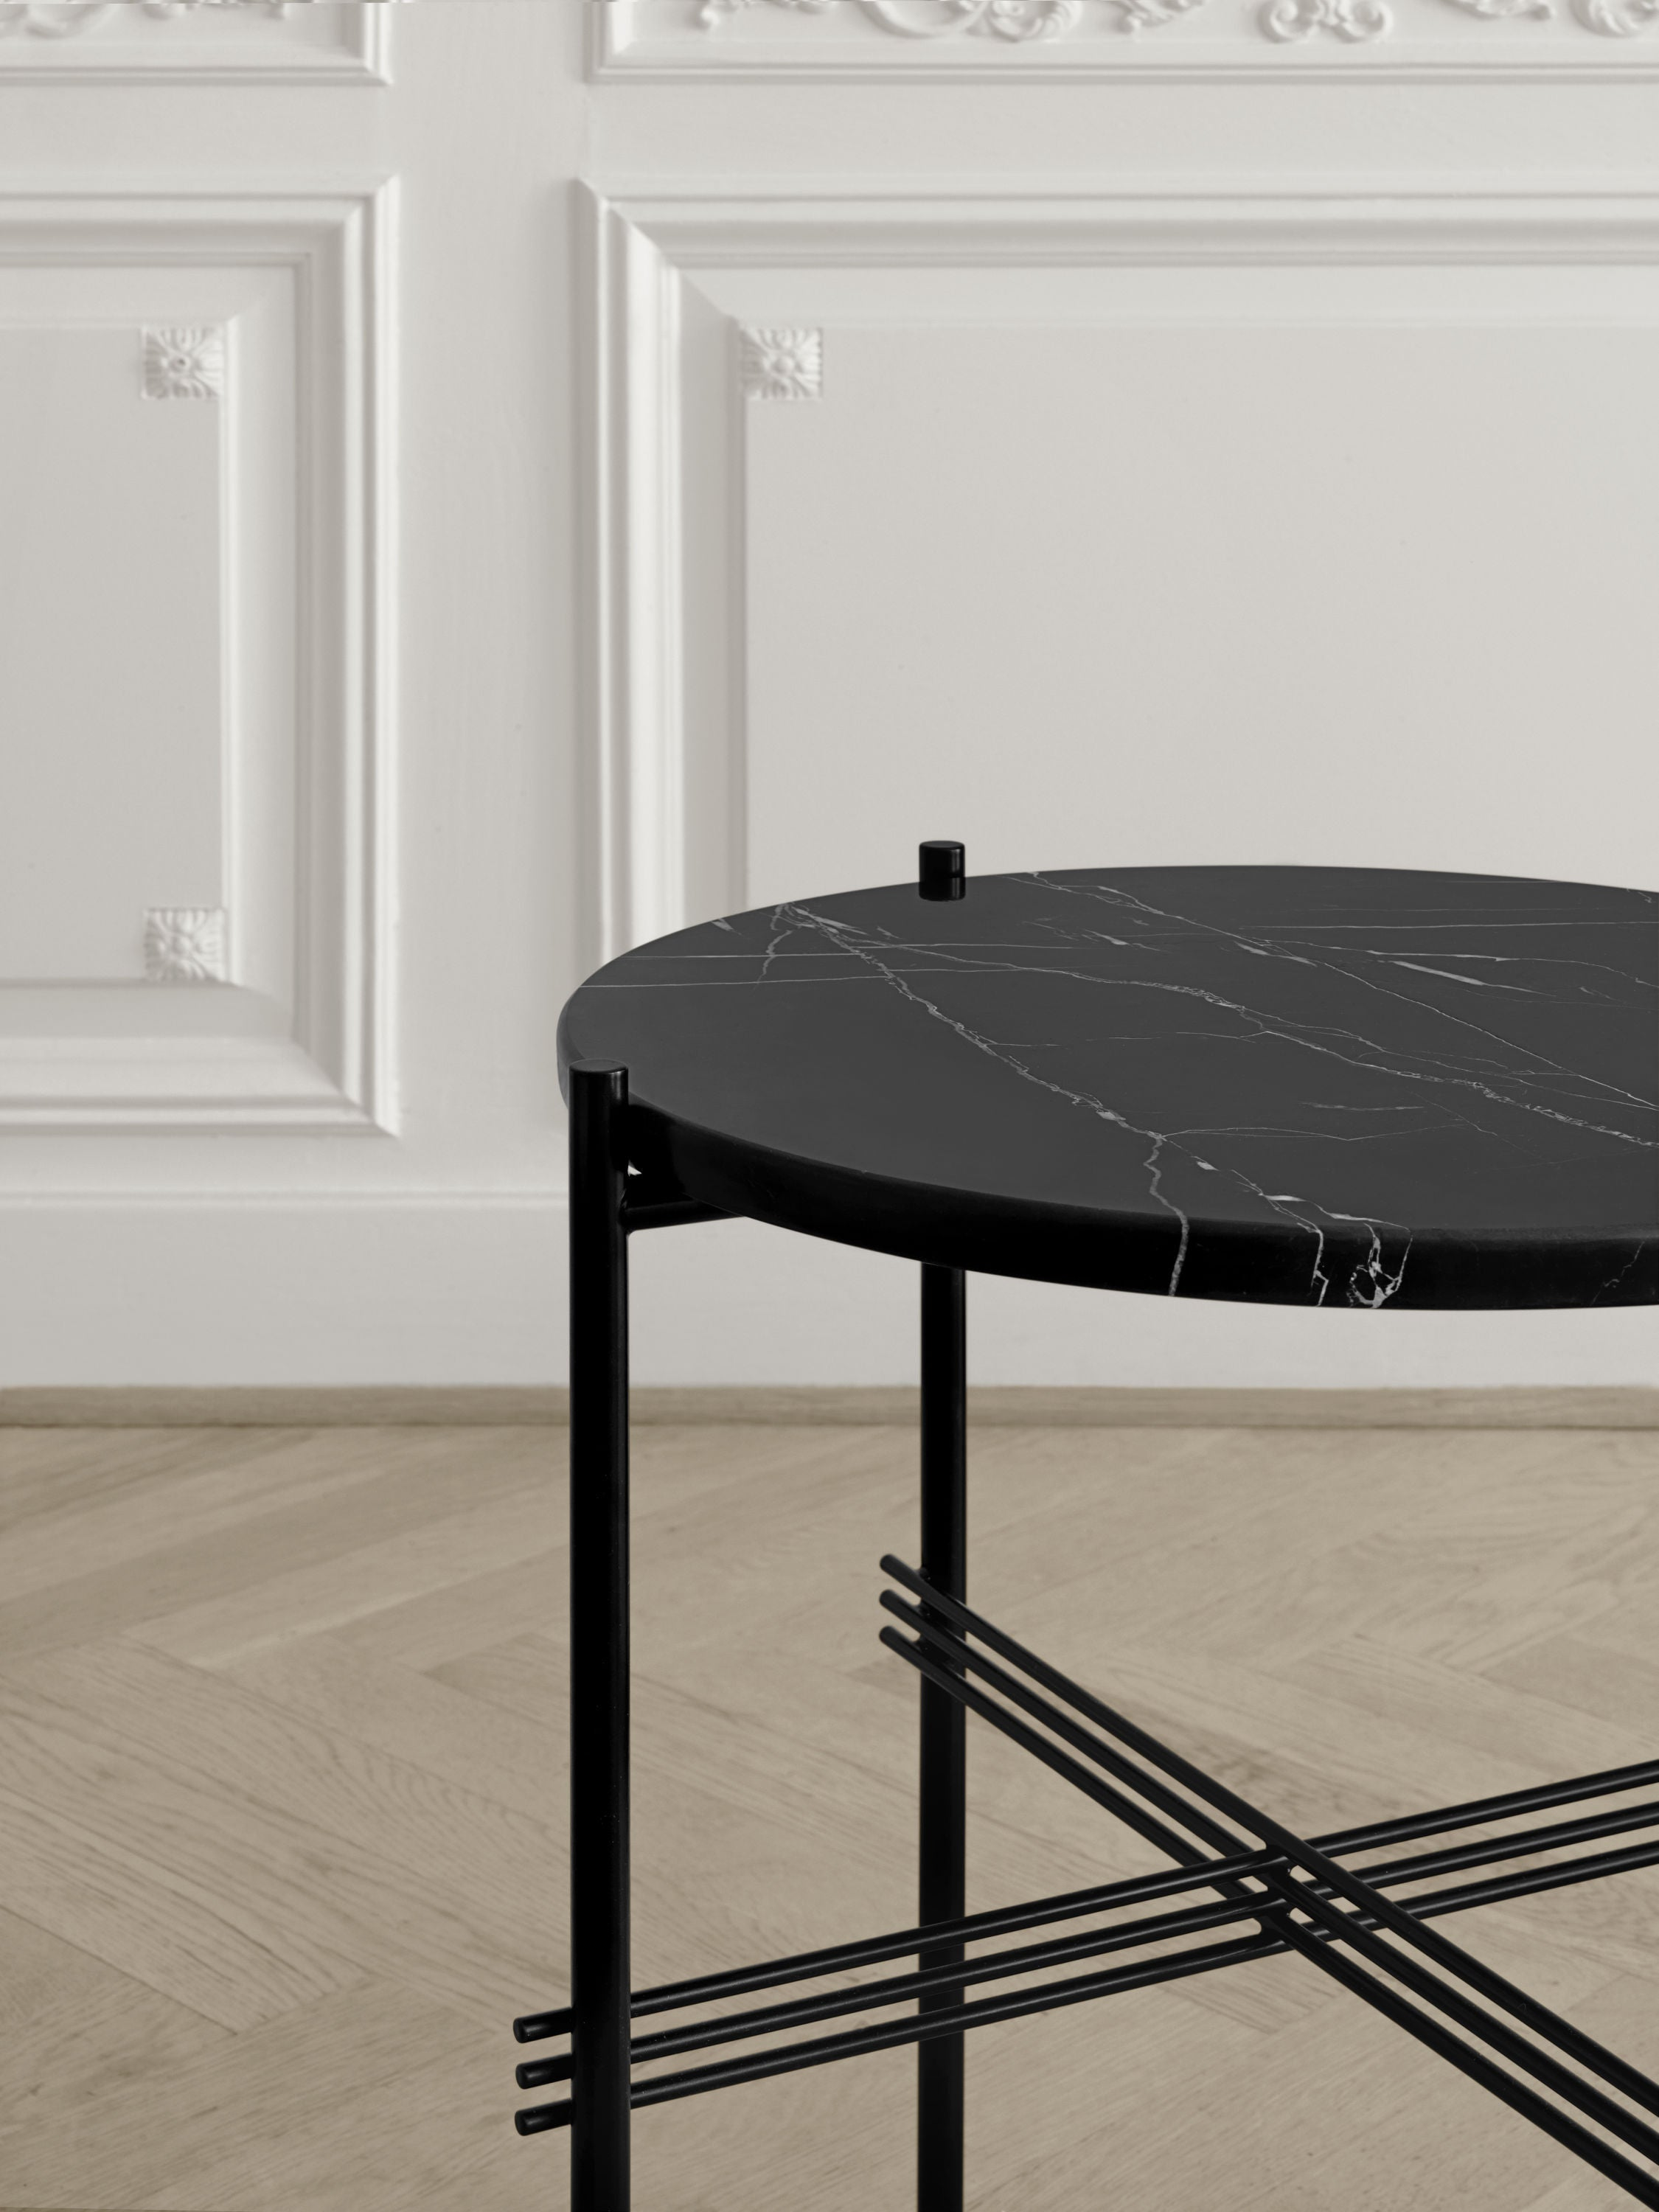 TS Coffee Table - Dia 105 Black base, glass vintage red top fra GUBI